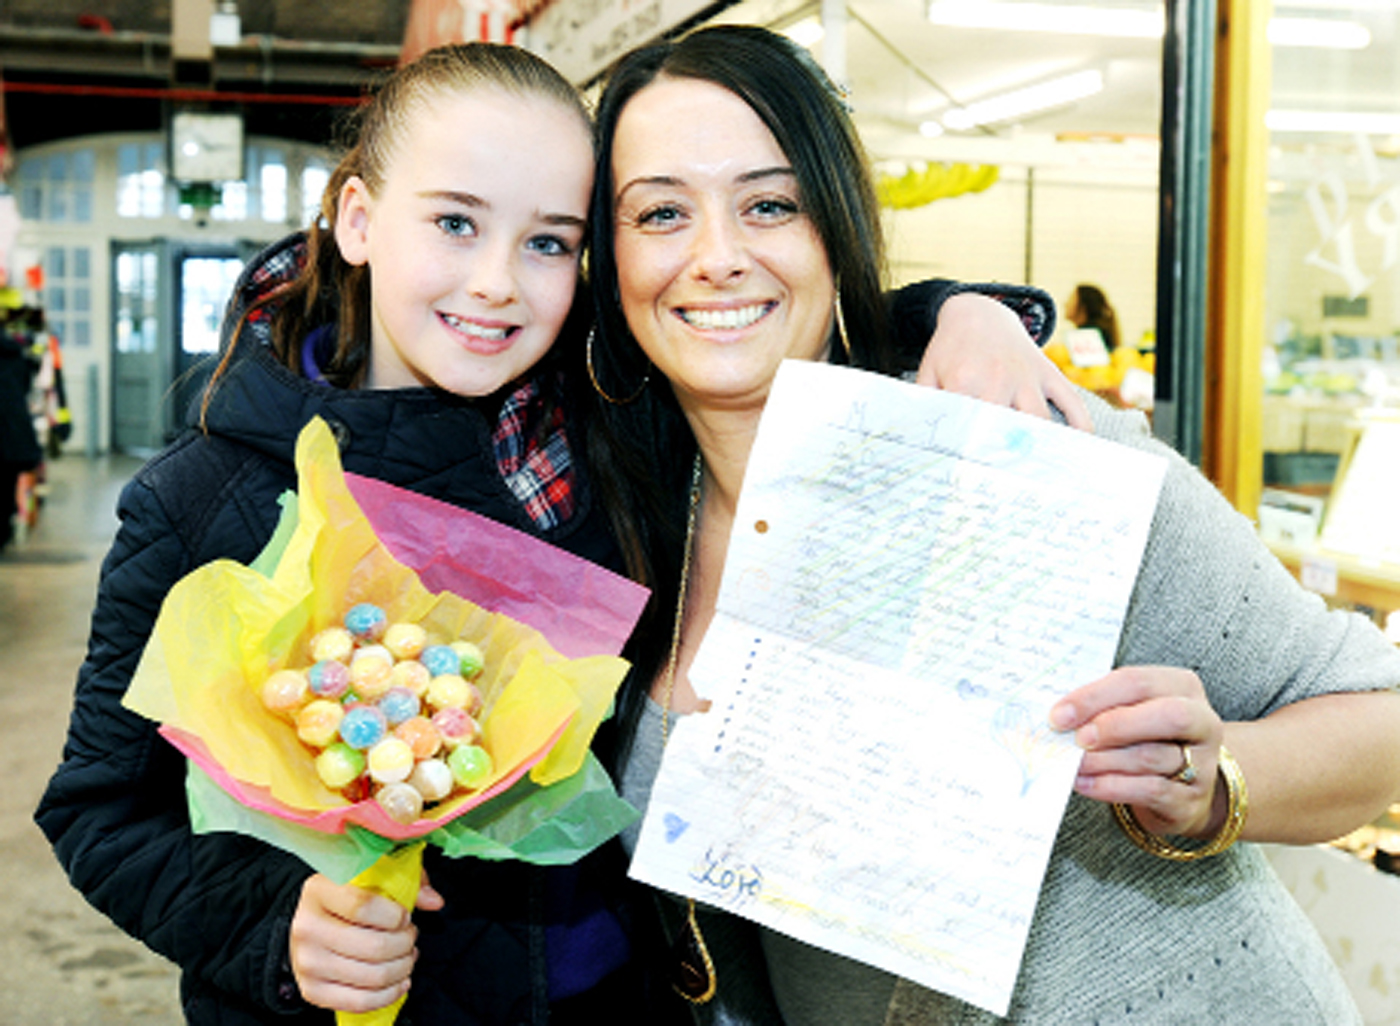 Joanne Graves won the Darwen Market Mother's Day Makeover competition after being nominated by her daughter Caitlin Smith 11